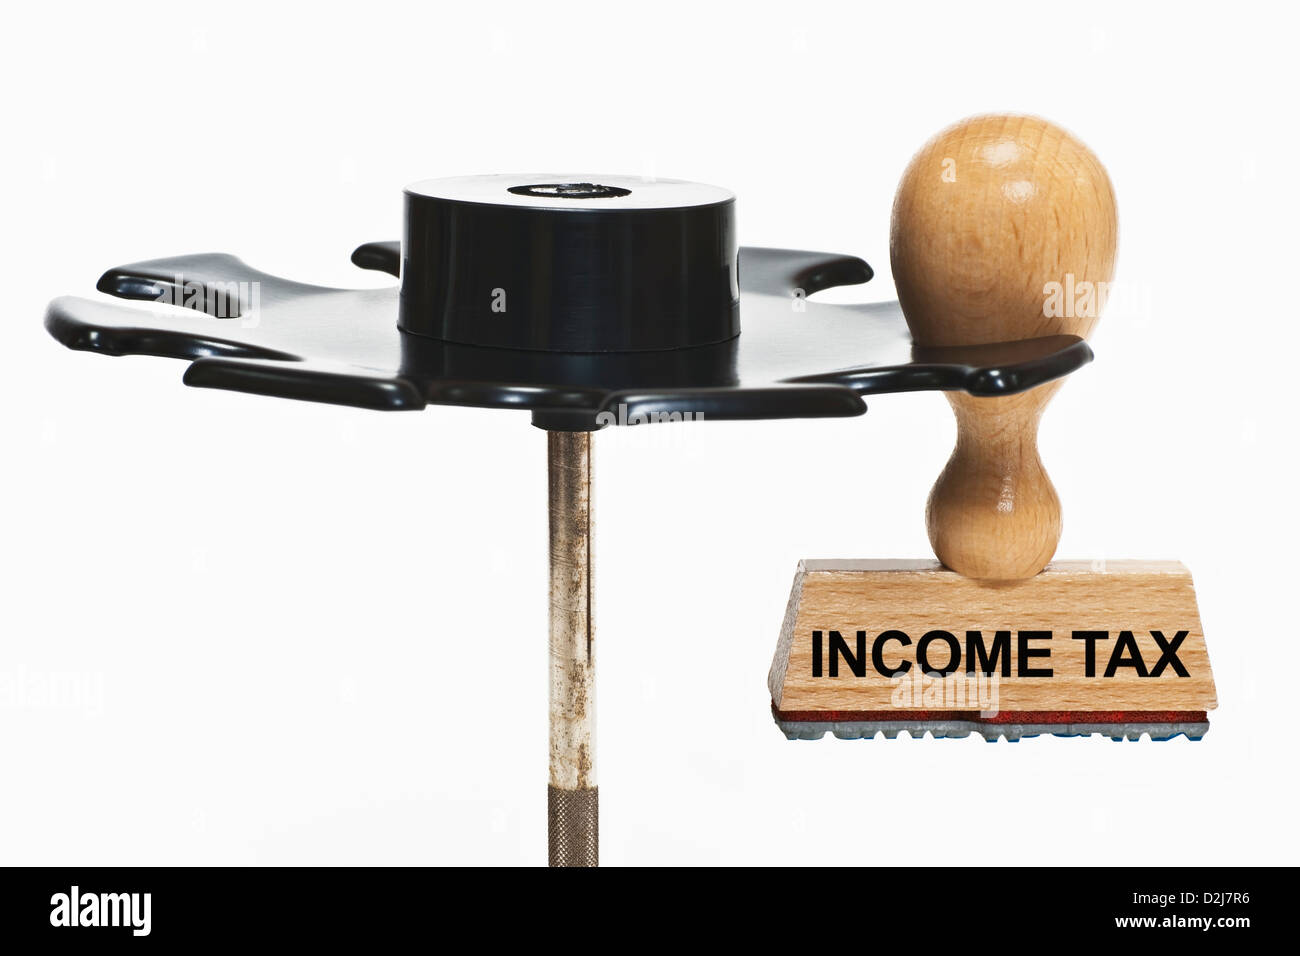 a stamp with the inscription income tax hangs in a stamp rack, background white - Stock Image